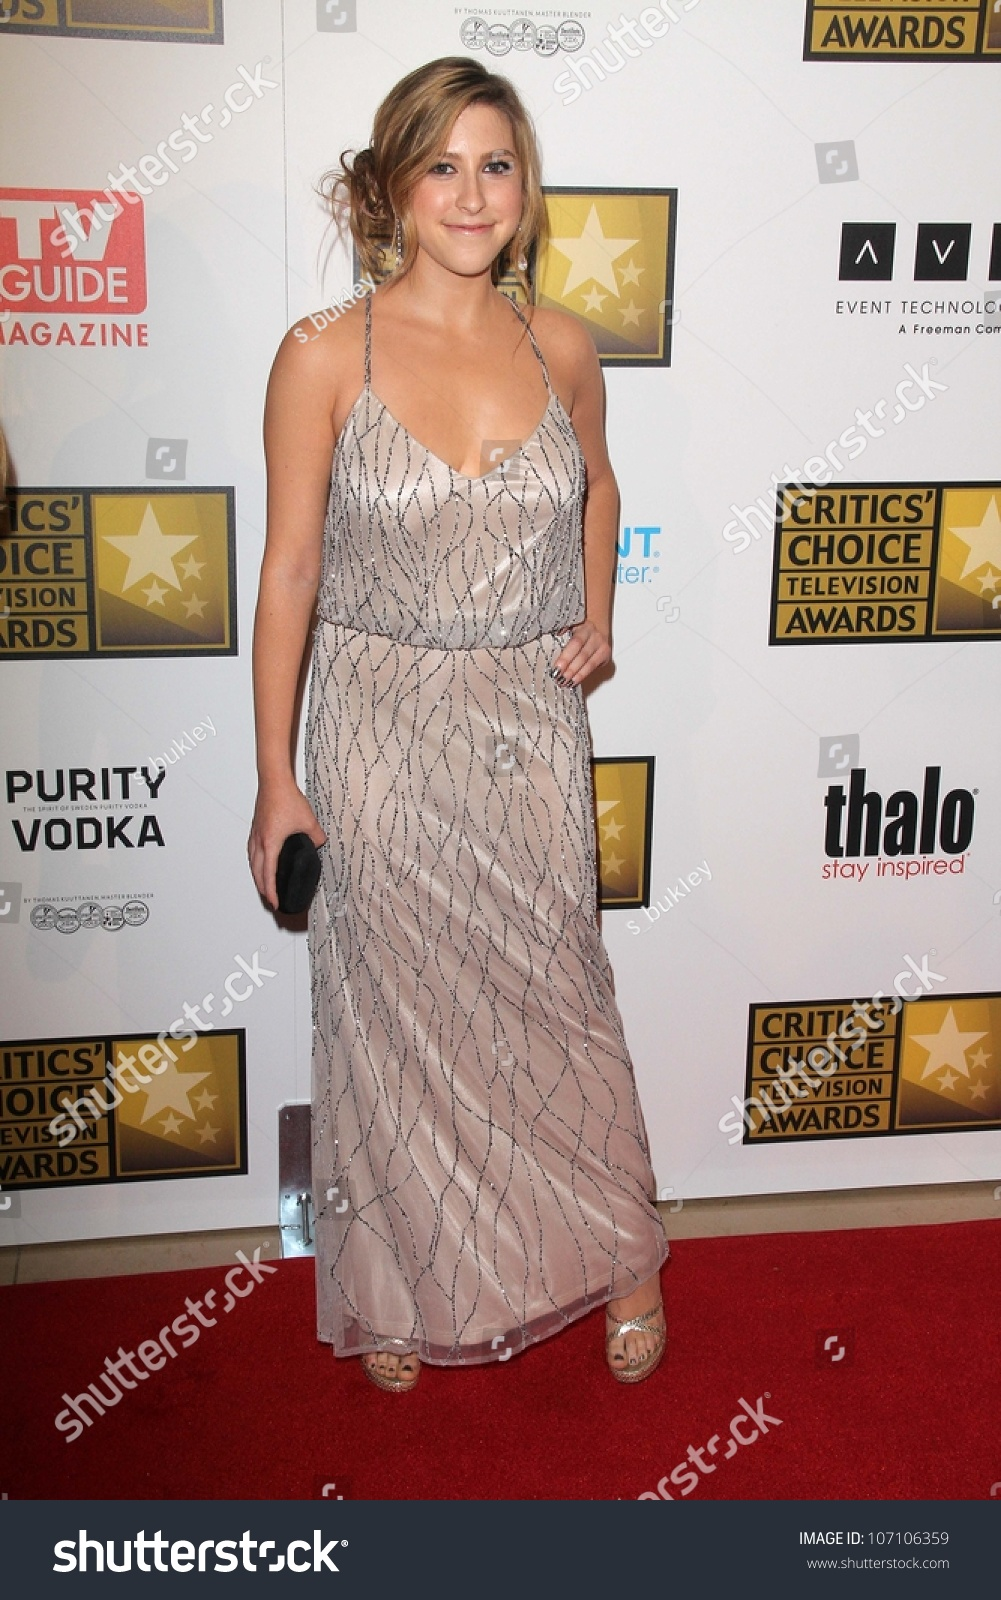 Pics photos eden sher images - Eden Sher At The Second Annual Critics Choice Television Awards Beverly Hilton Beverly